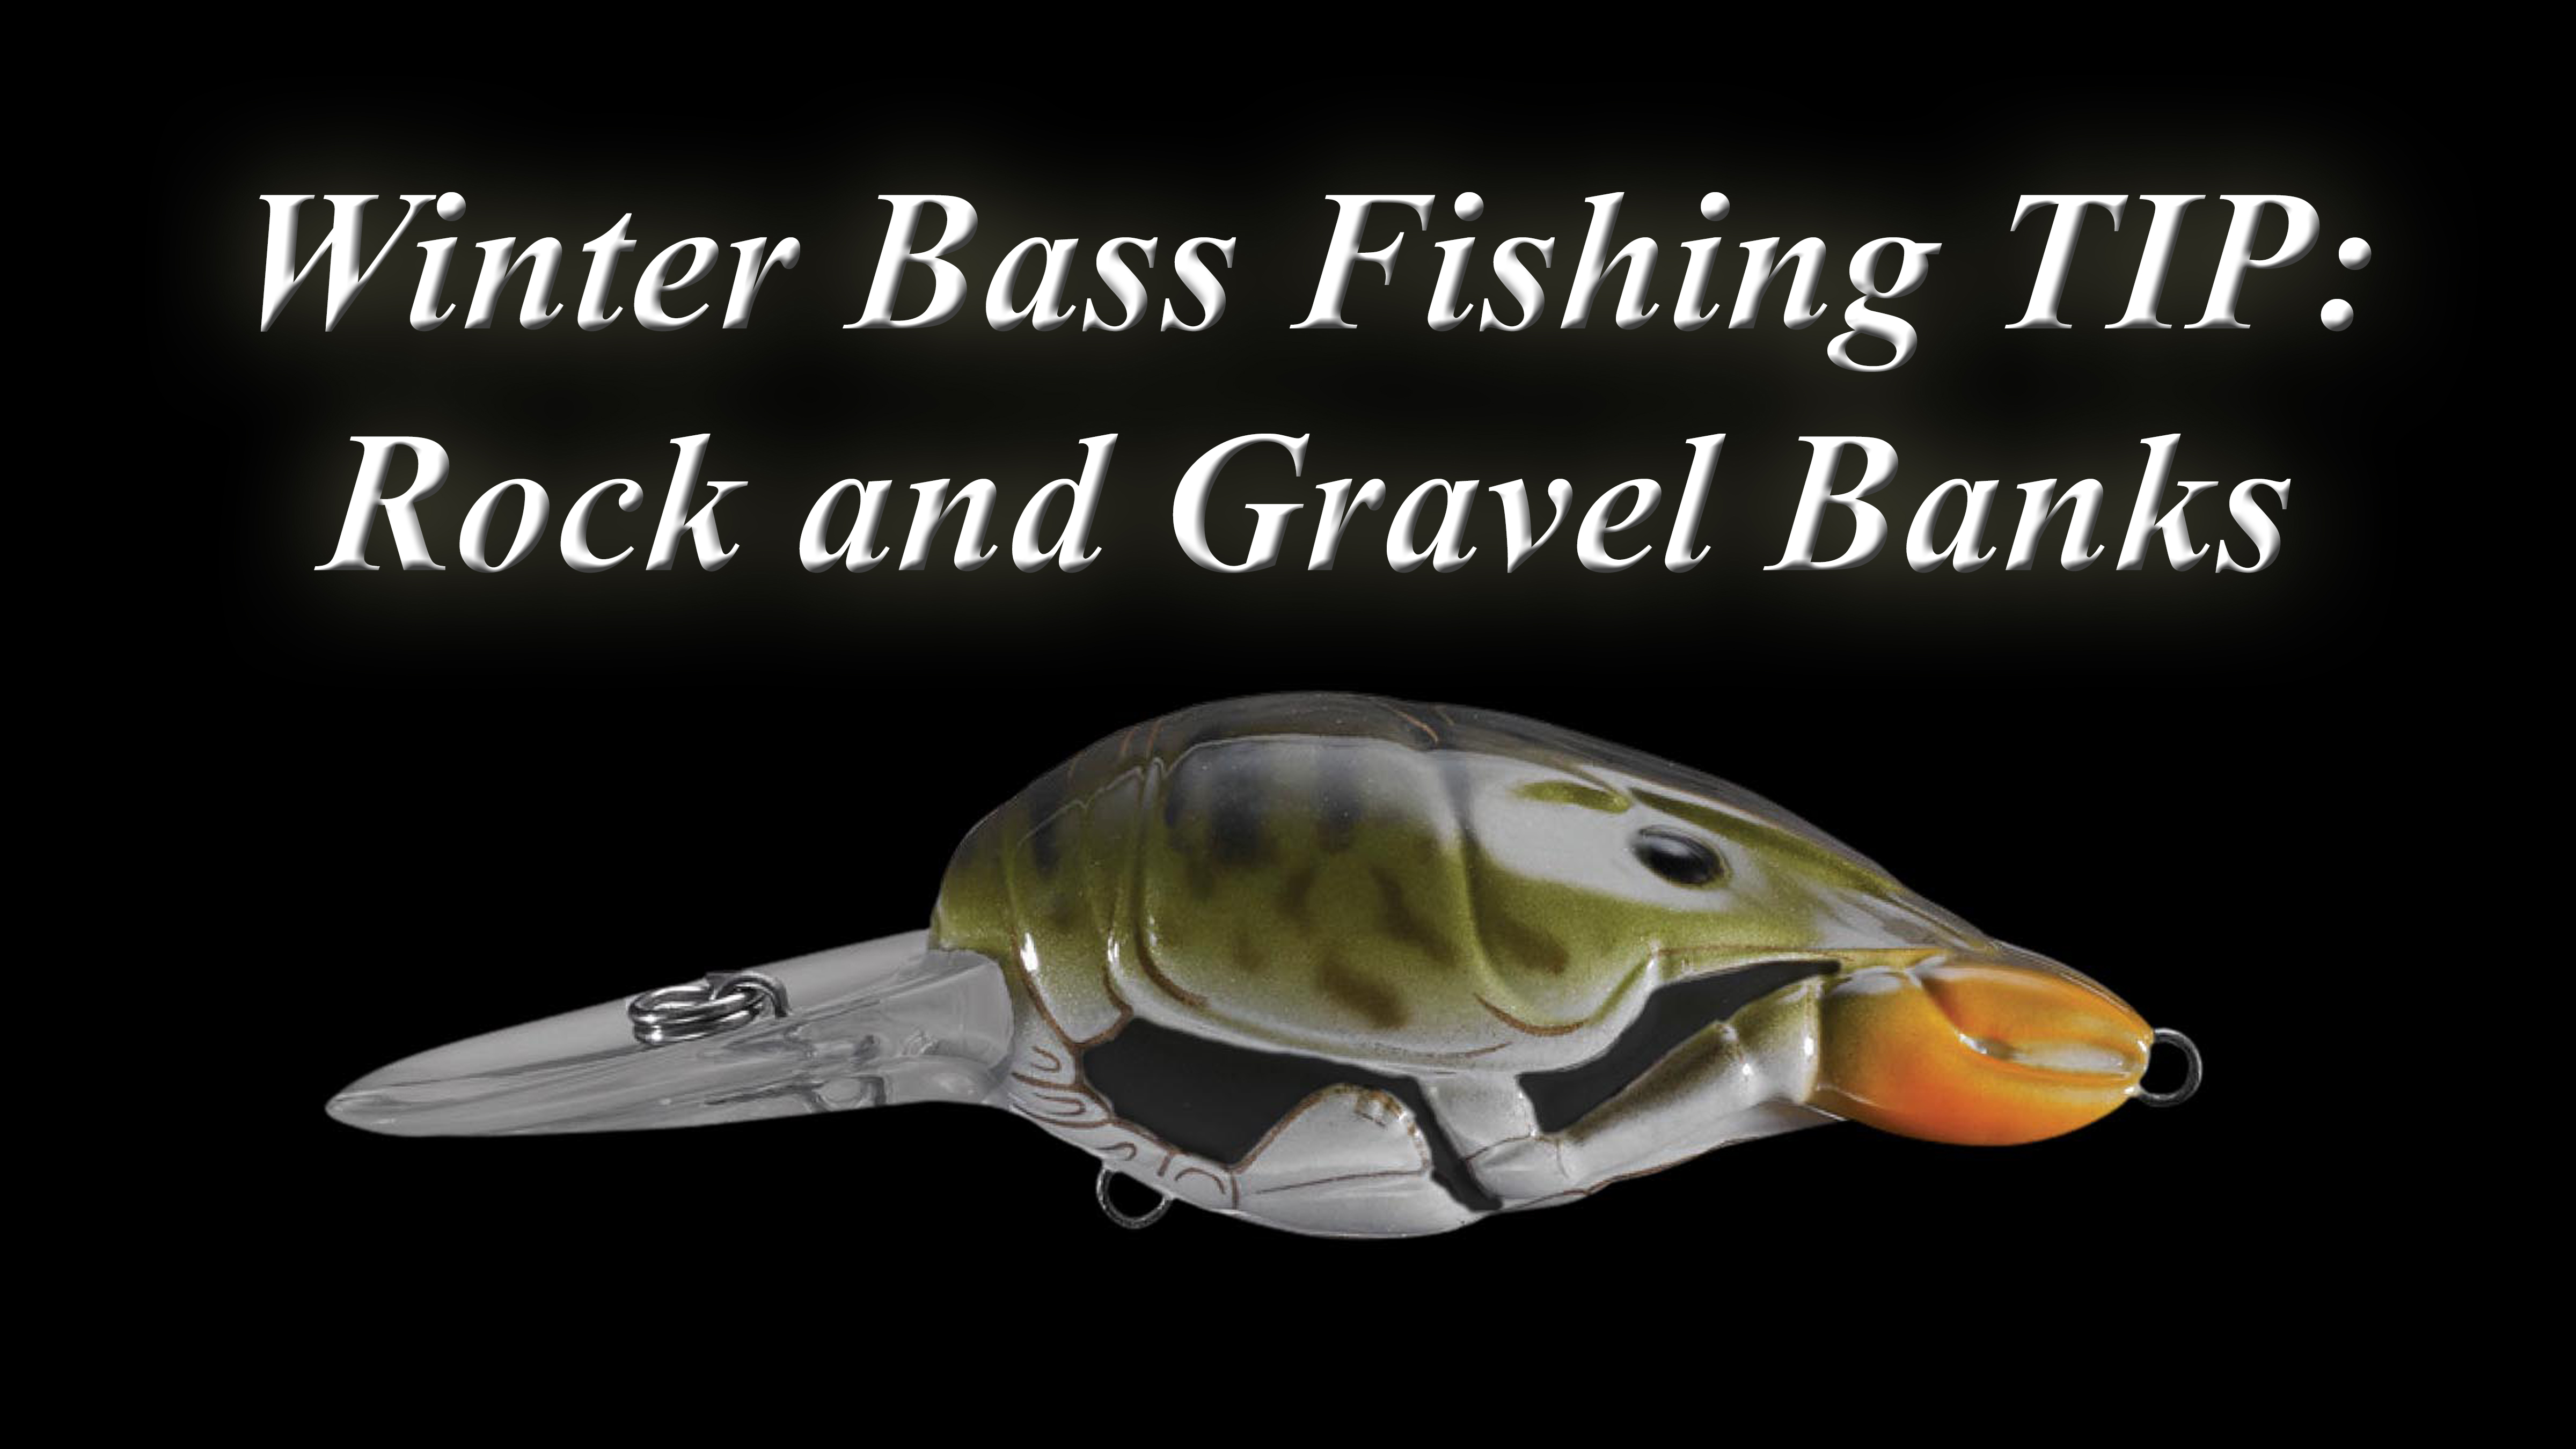 Andrew Nordbye's Cold Water Bassin' Tip #3 – Where to Target